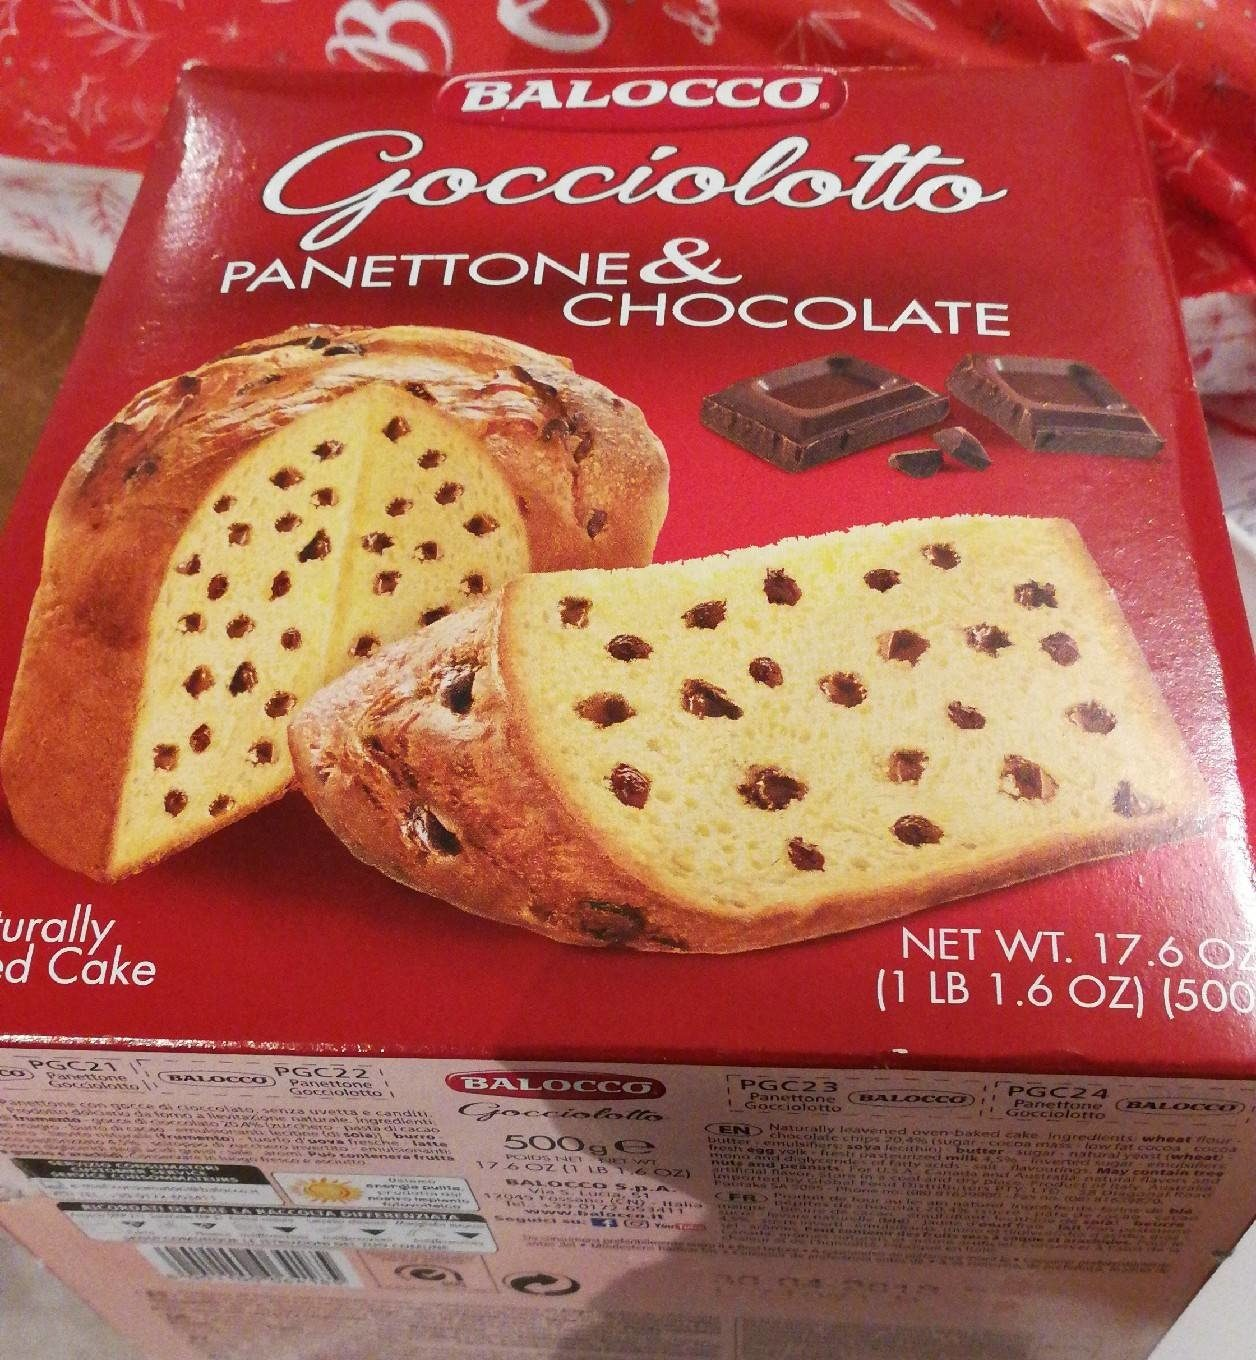 Panettone & Chocolate - Product